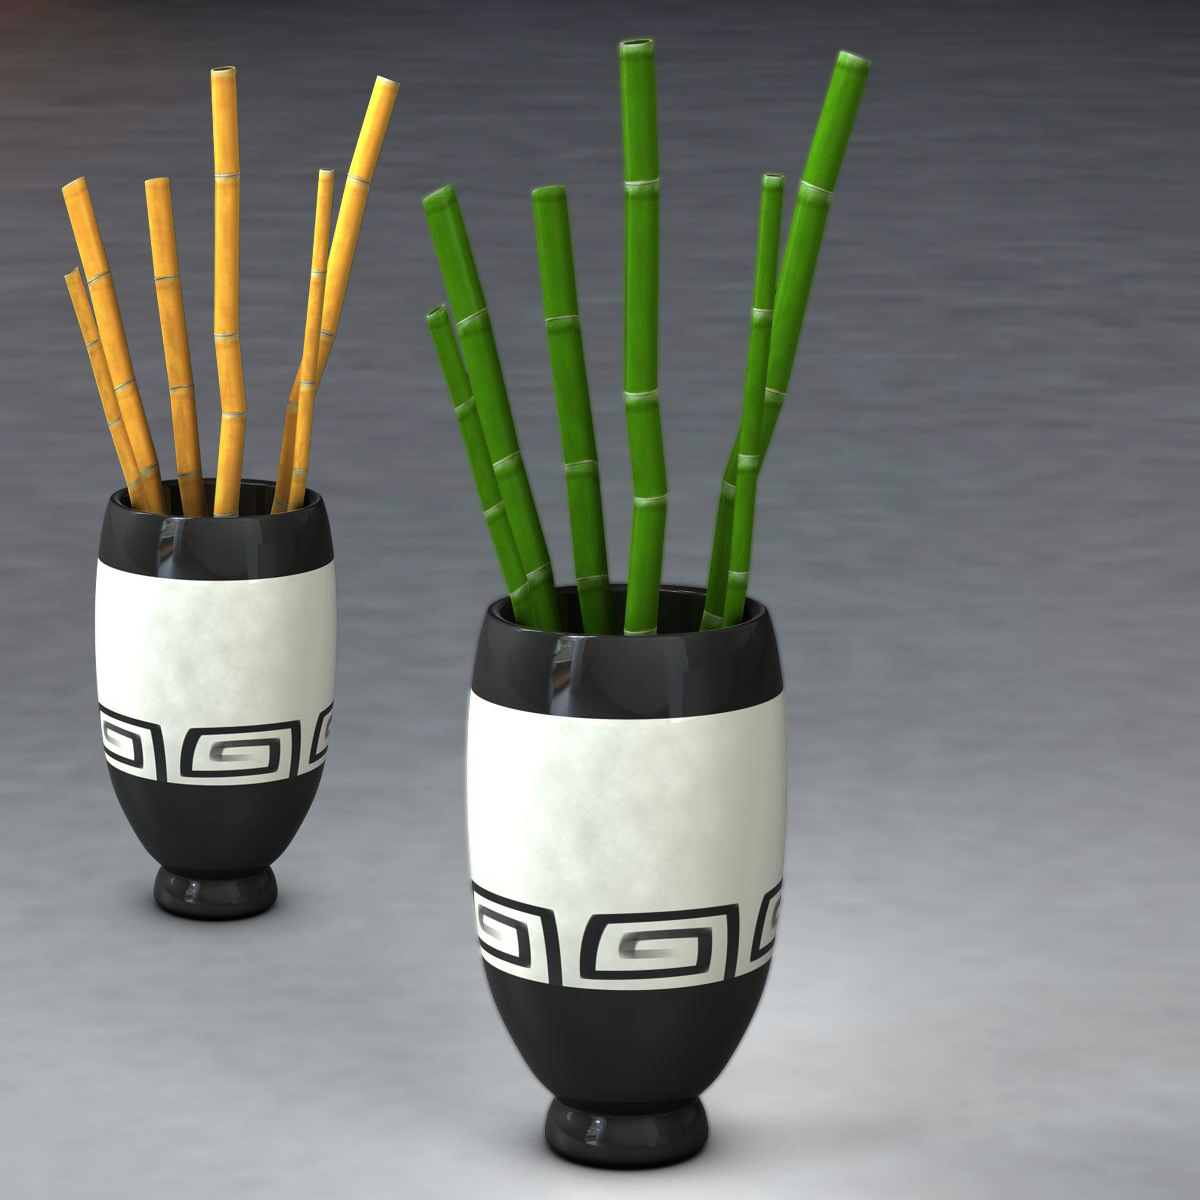 bamboo and vase low poly 3d model 3ds max fbx c4d ma mb obj 163027